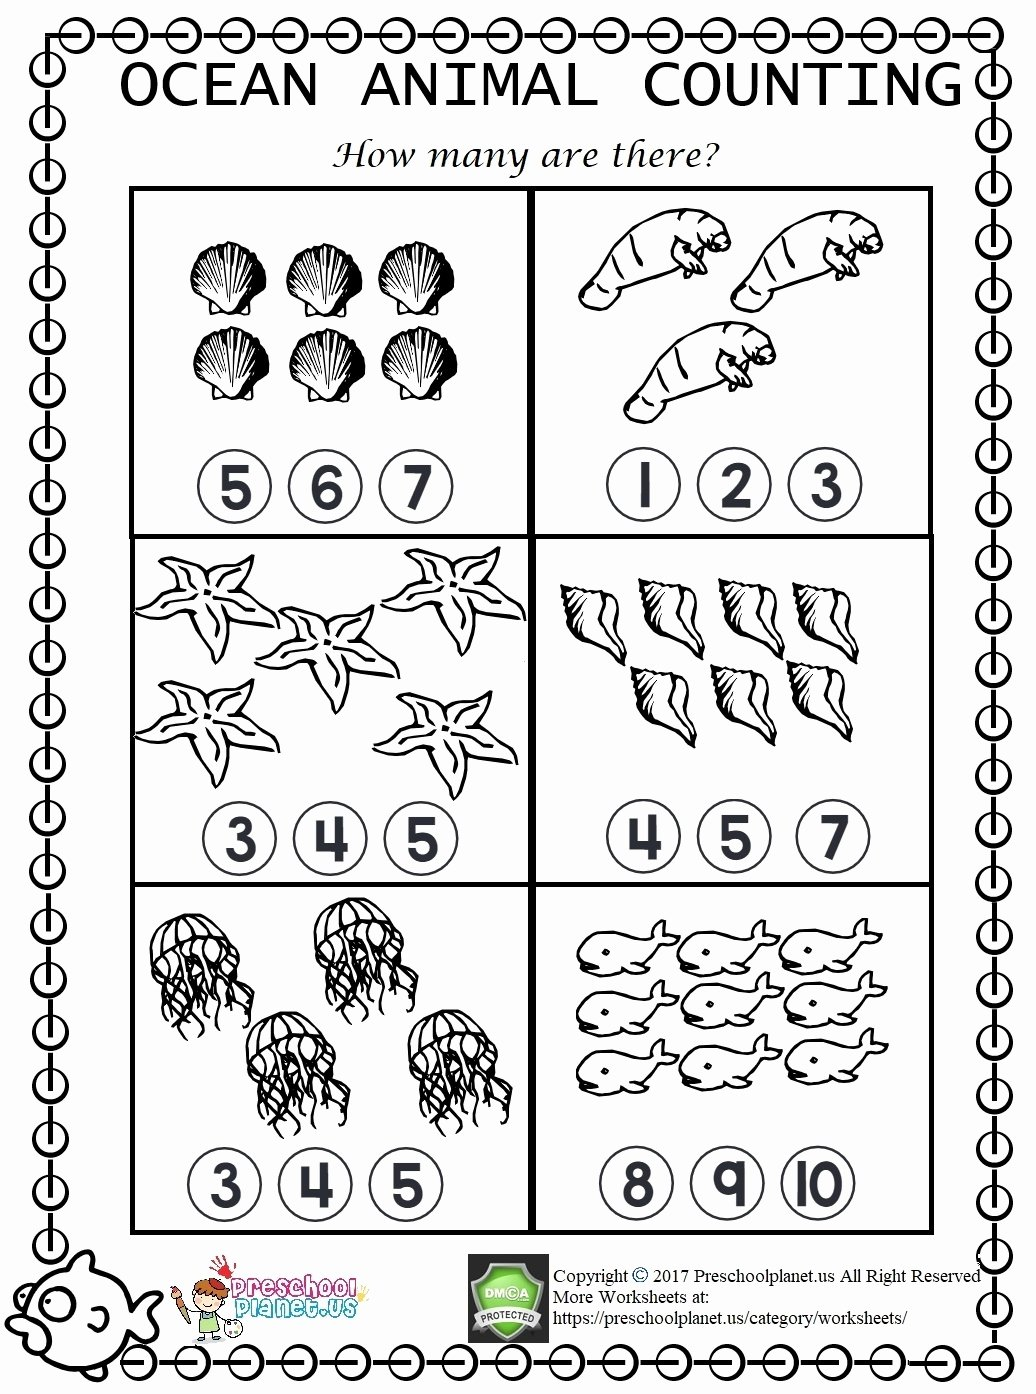 hight resolution of Sea Animals Worksheets for Preschoolers New Ocean Animals Tracing Worksheets  Itsybitsyfun – Printable Worksheets for Kids